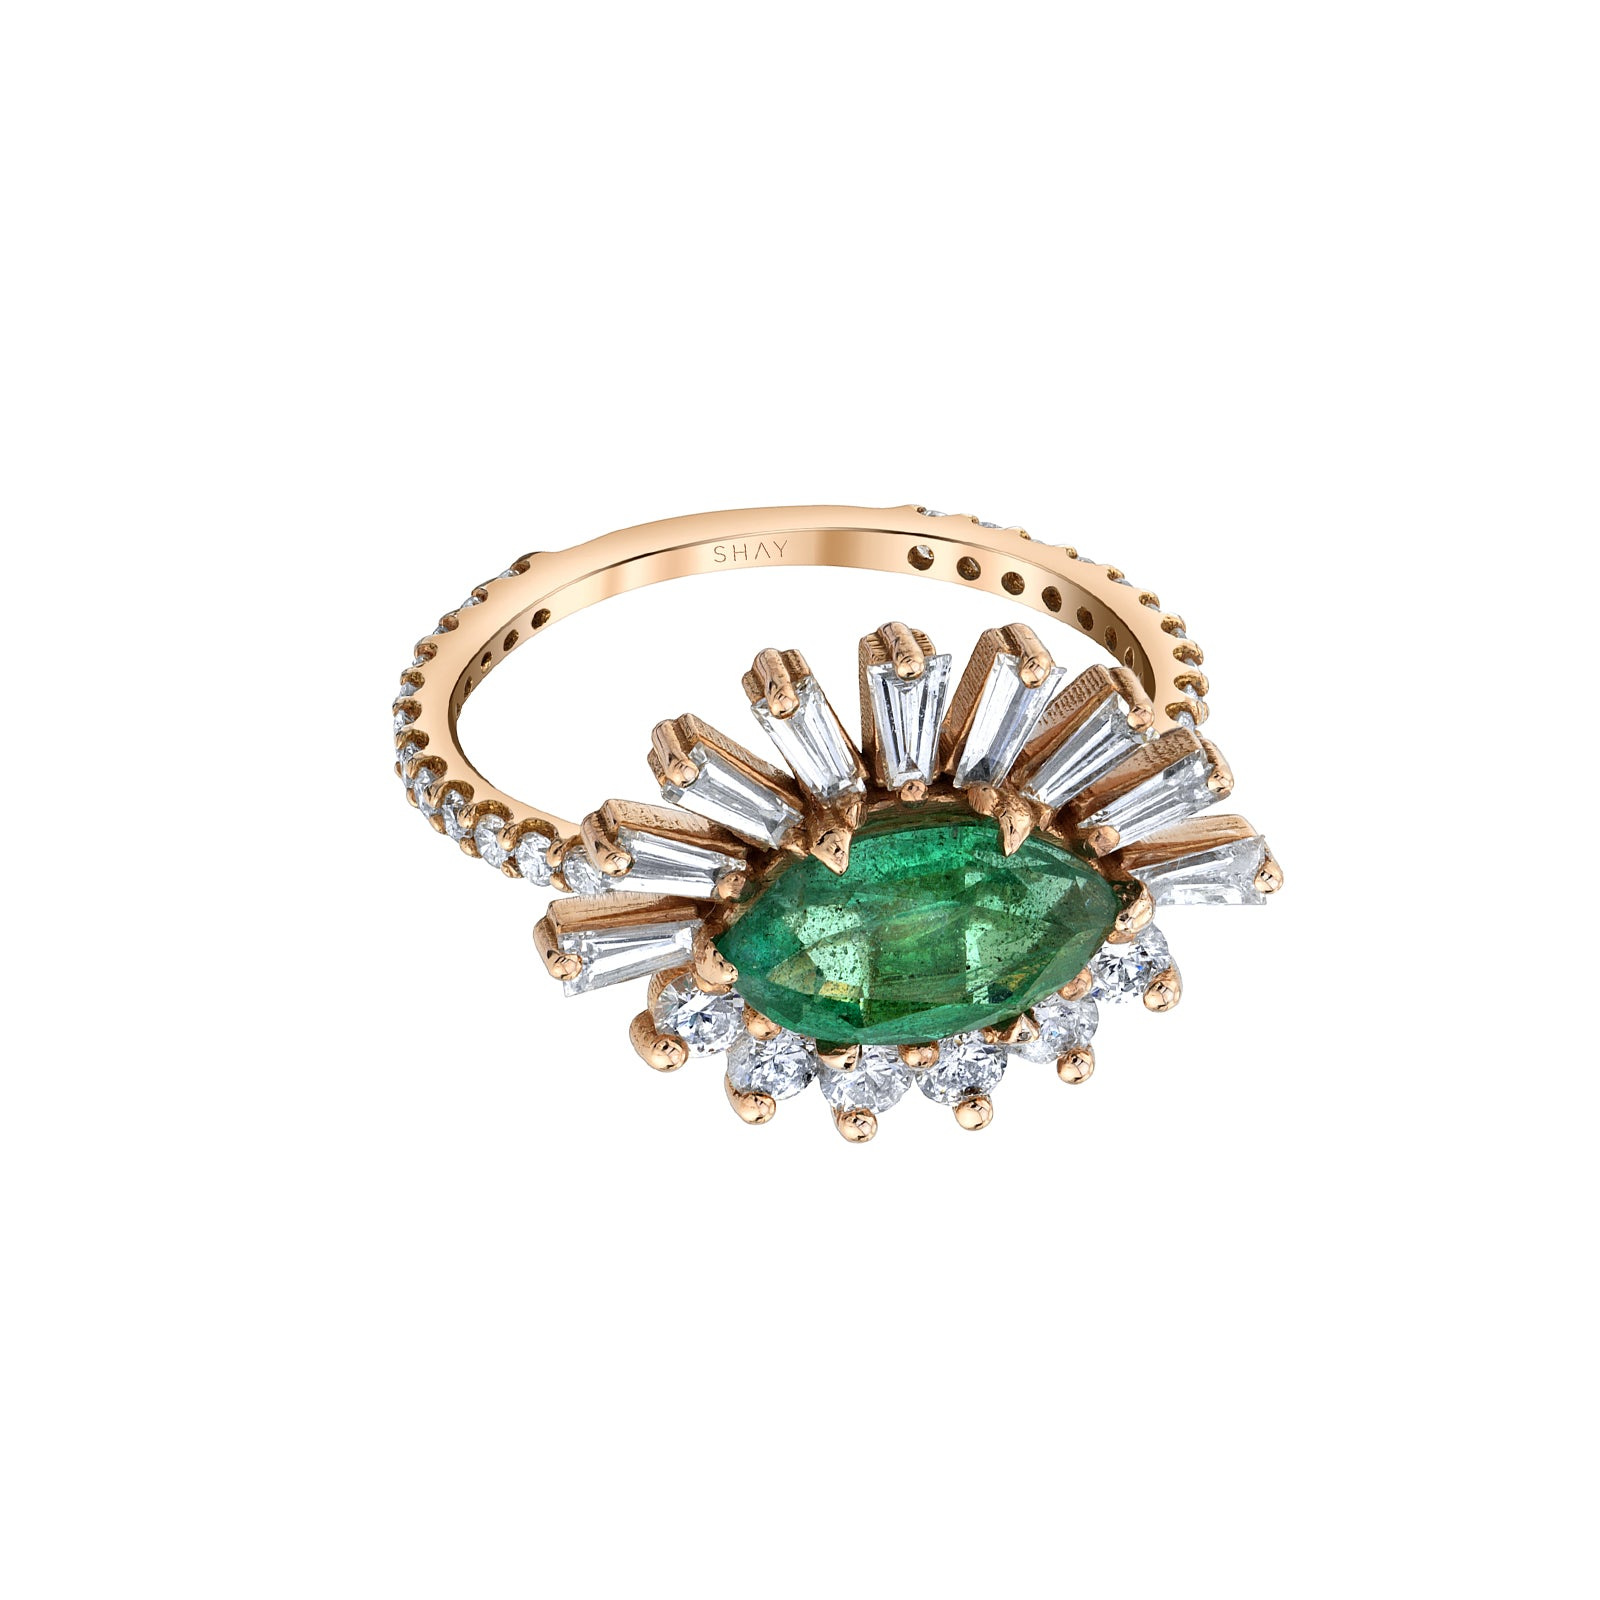 Shay Evil Eye Emerald & Diamond Ring - Rose Gold - Rings - Broken English Jewelry